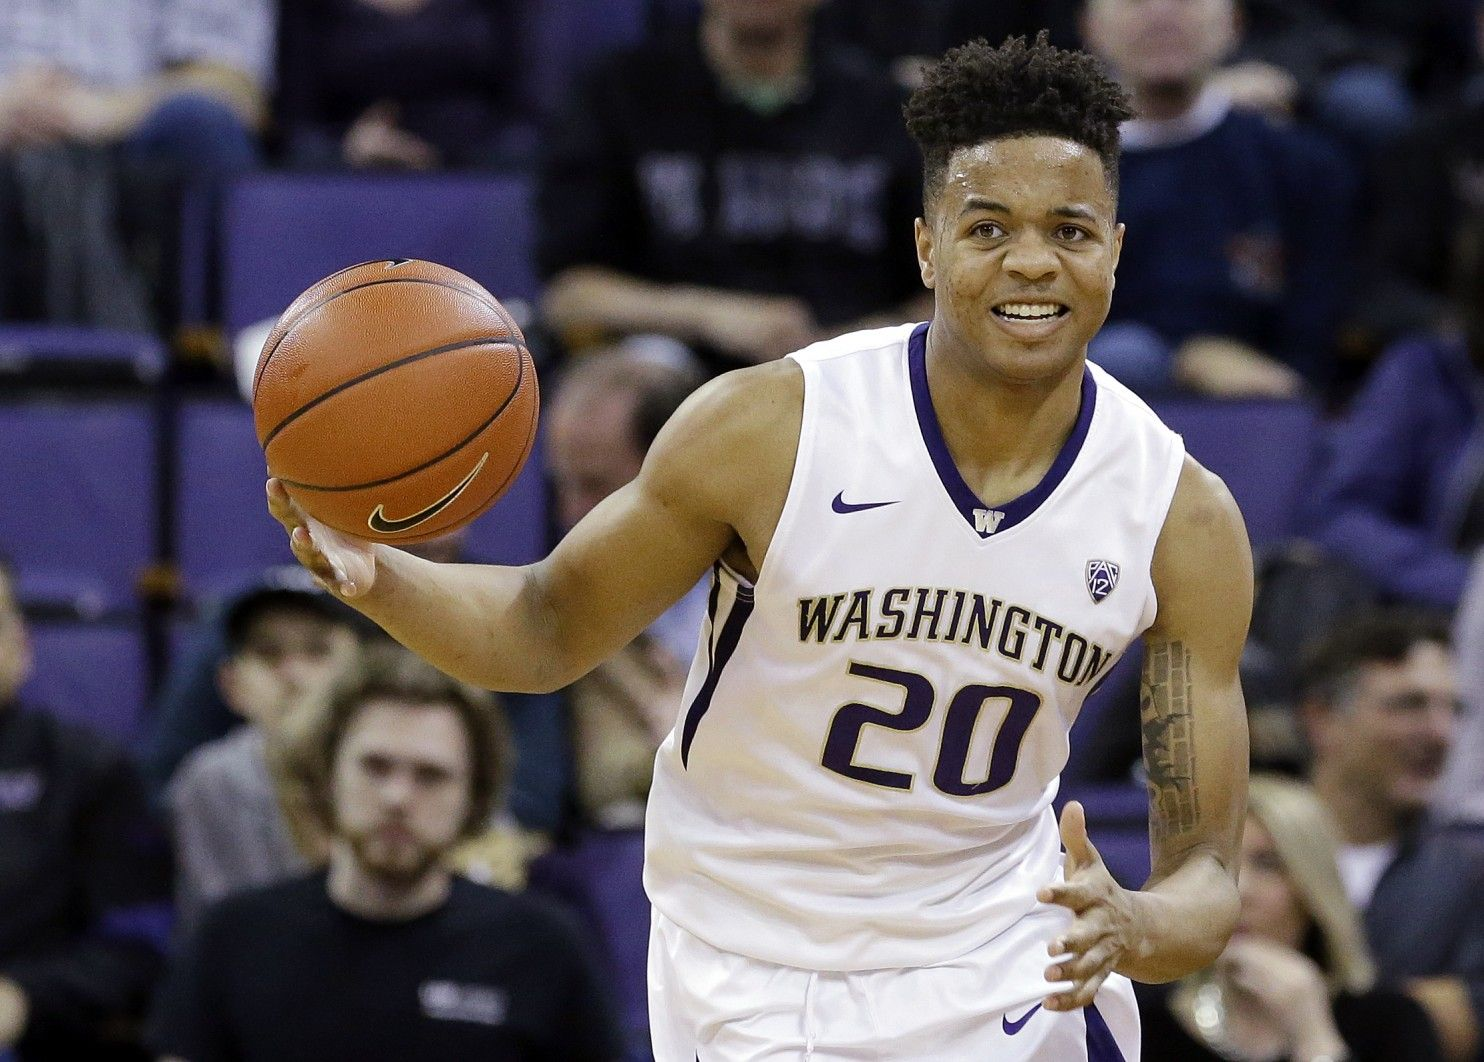 Markelle Fultz Projected Number 1 Draft Pick